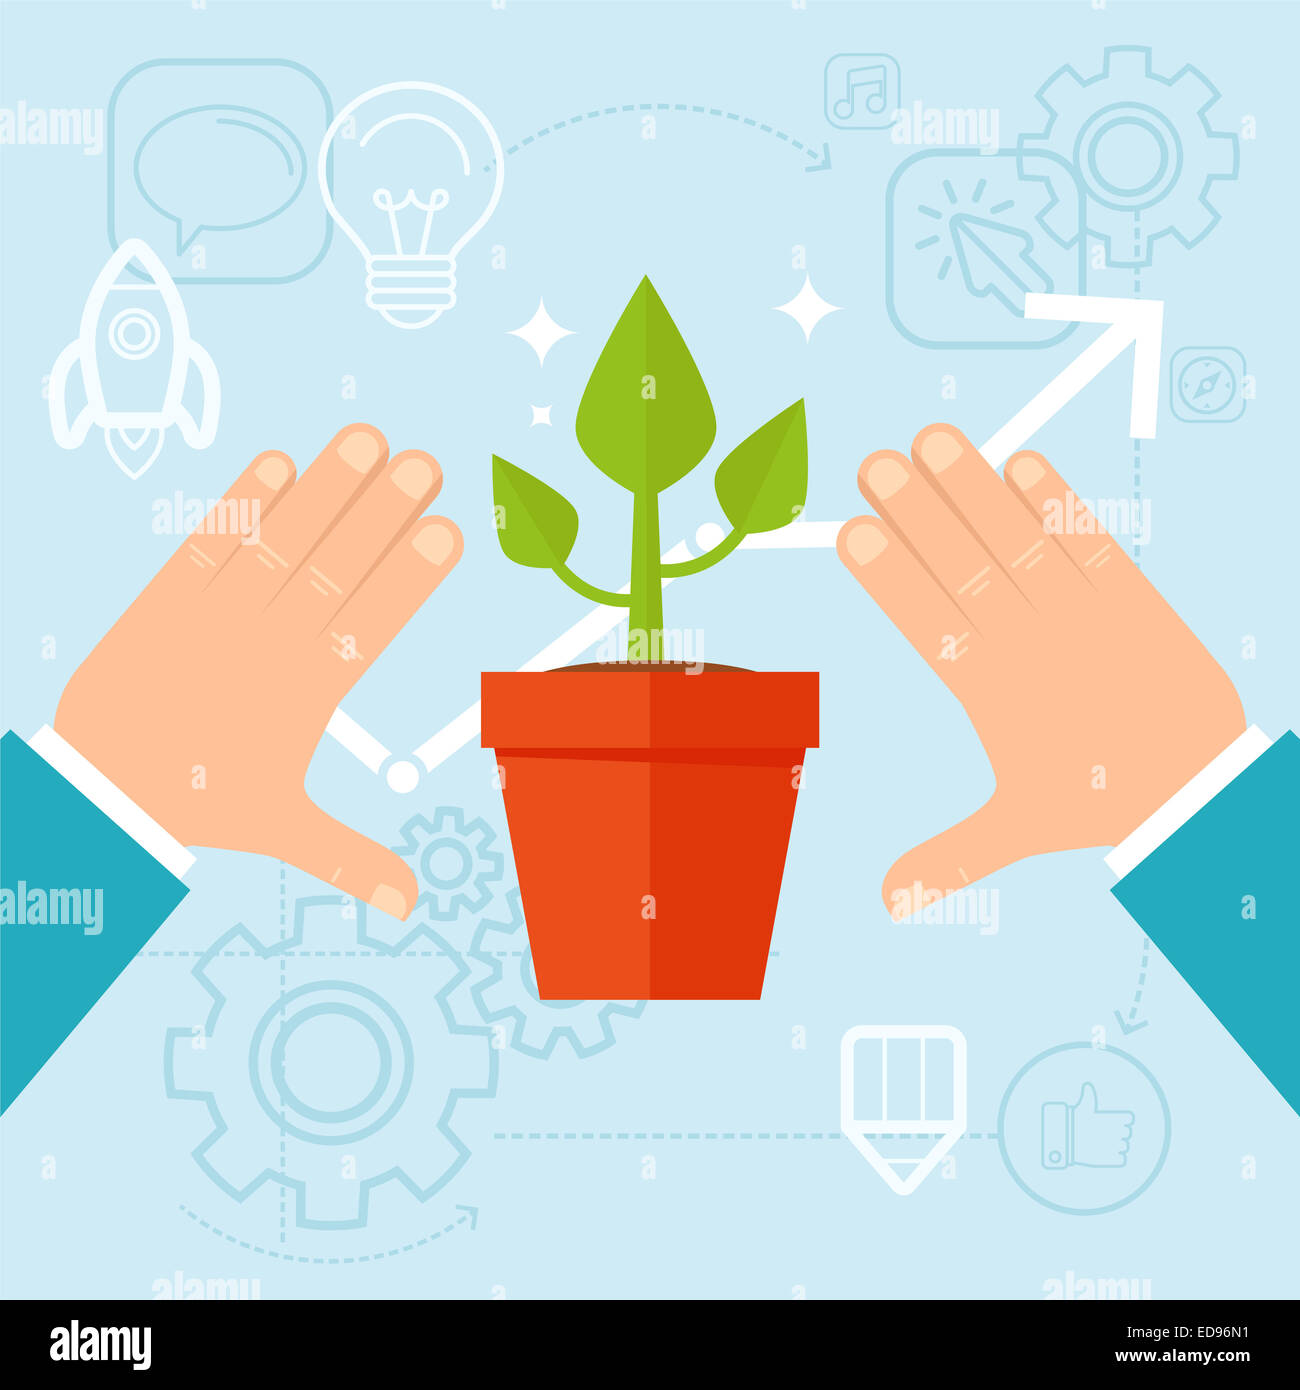 Personal development concept in flat style - green plant and human hands - Stock Image